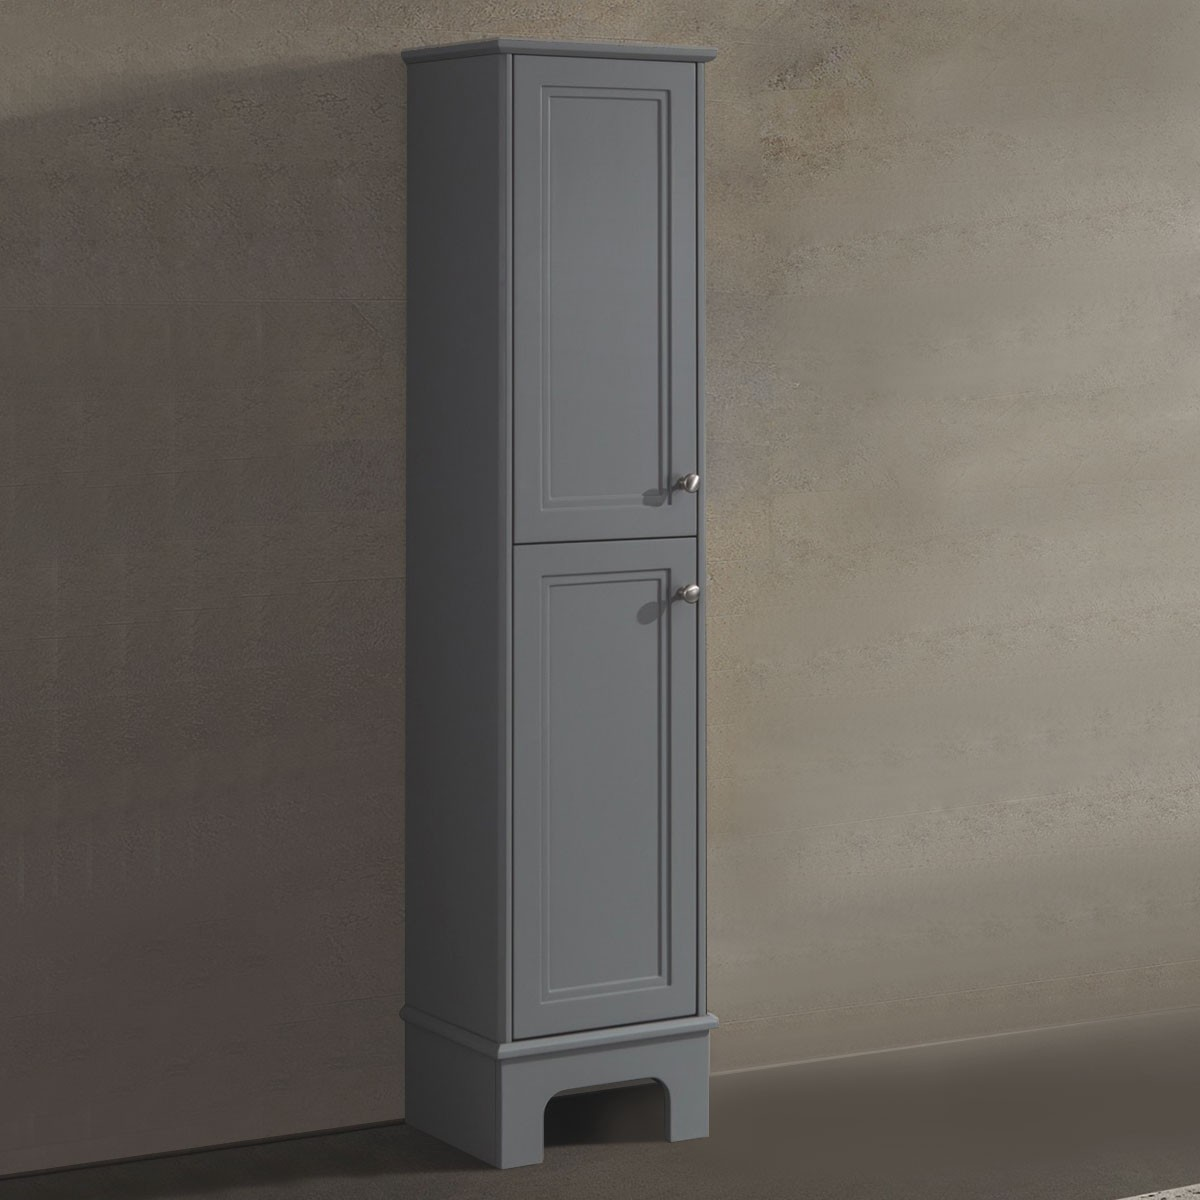 14 x 64 In. Freestanding Bathroom Linen Cabinet (BR8002-S)